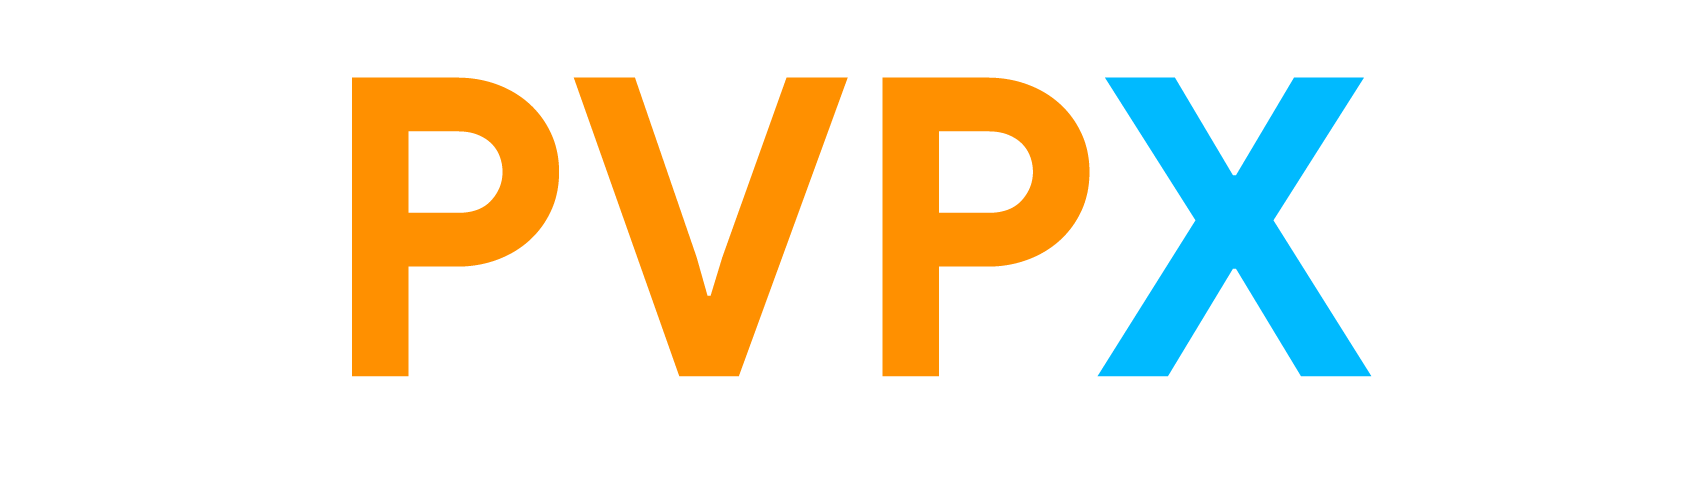 PVPX Network